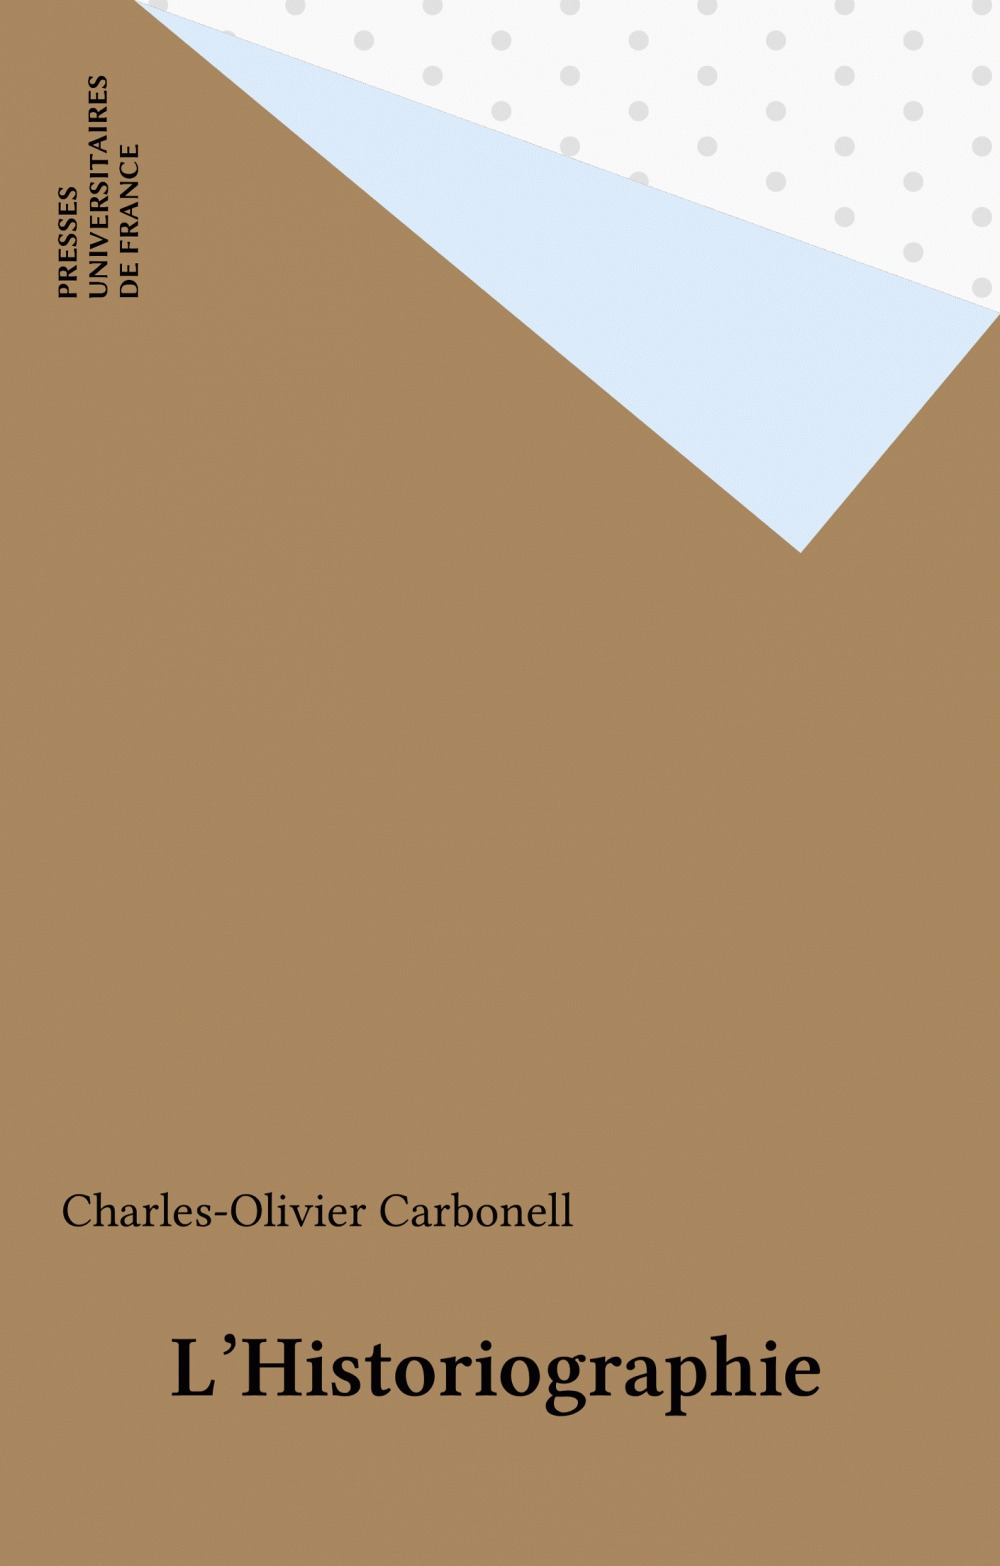 L'Historiographie  - Carbonell C.O.  - Charles-Olivier Carbonell